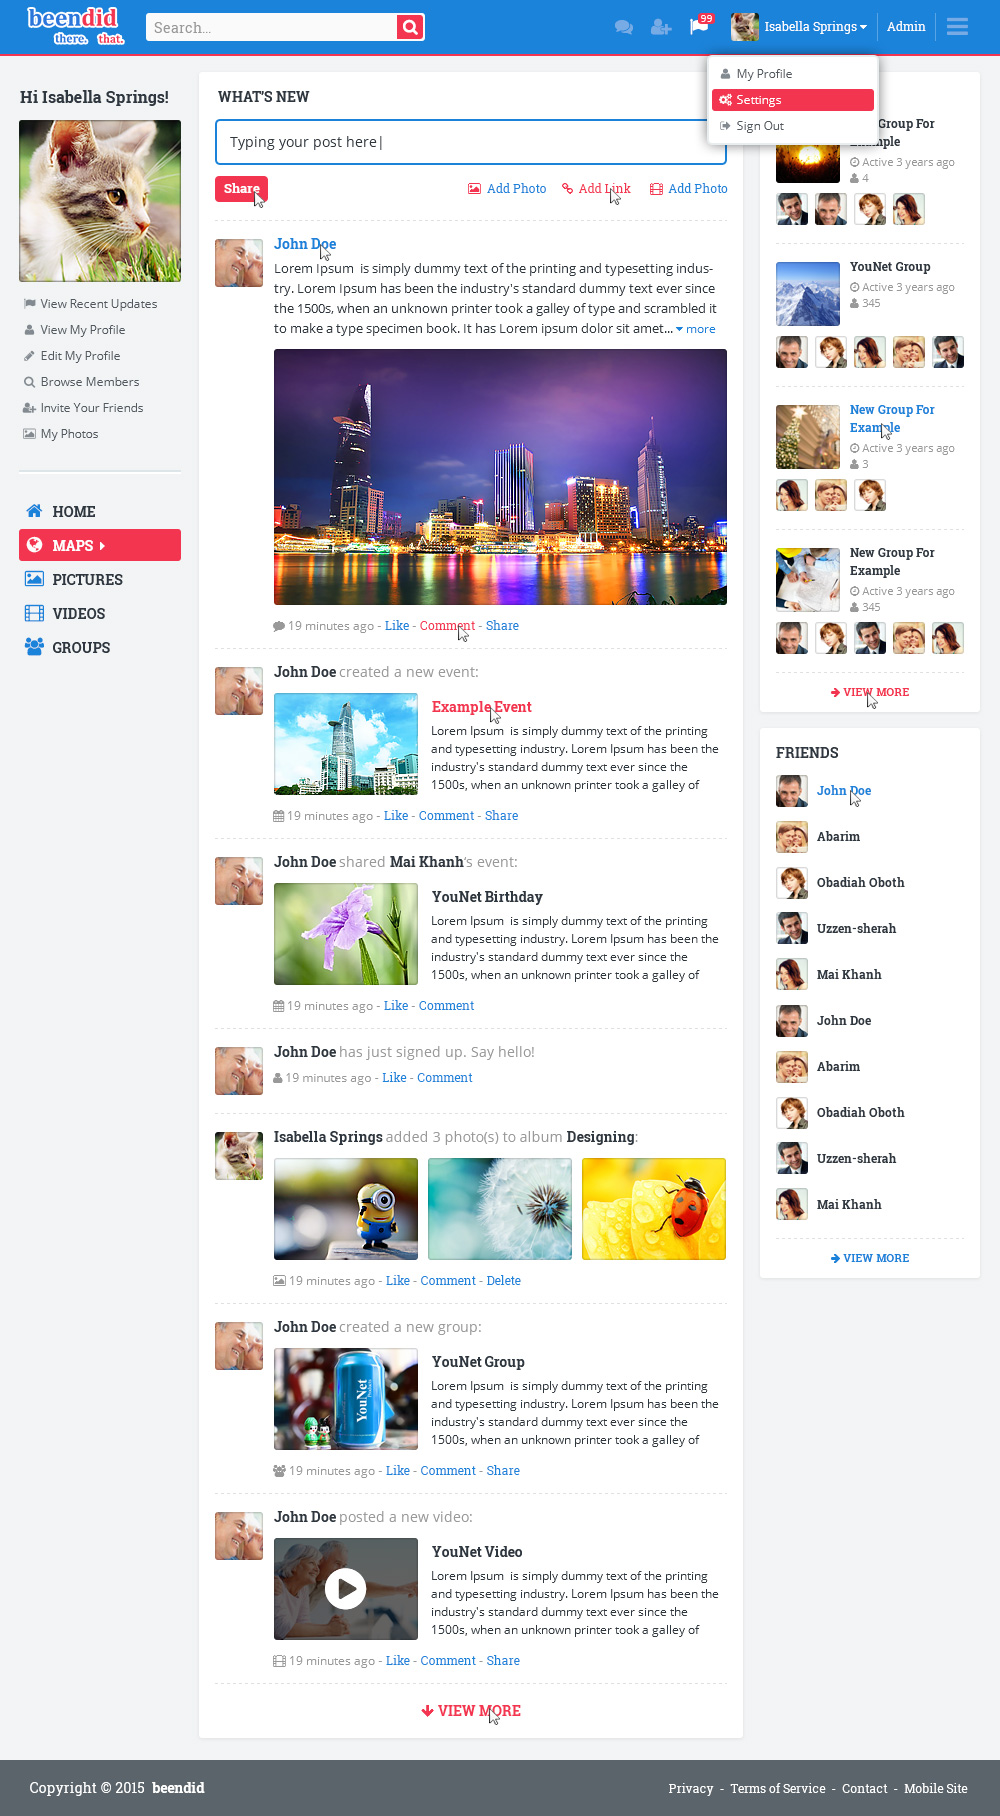 user-home-hovering-profile